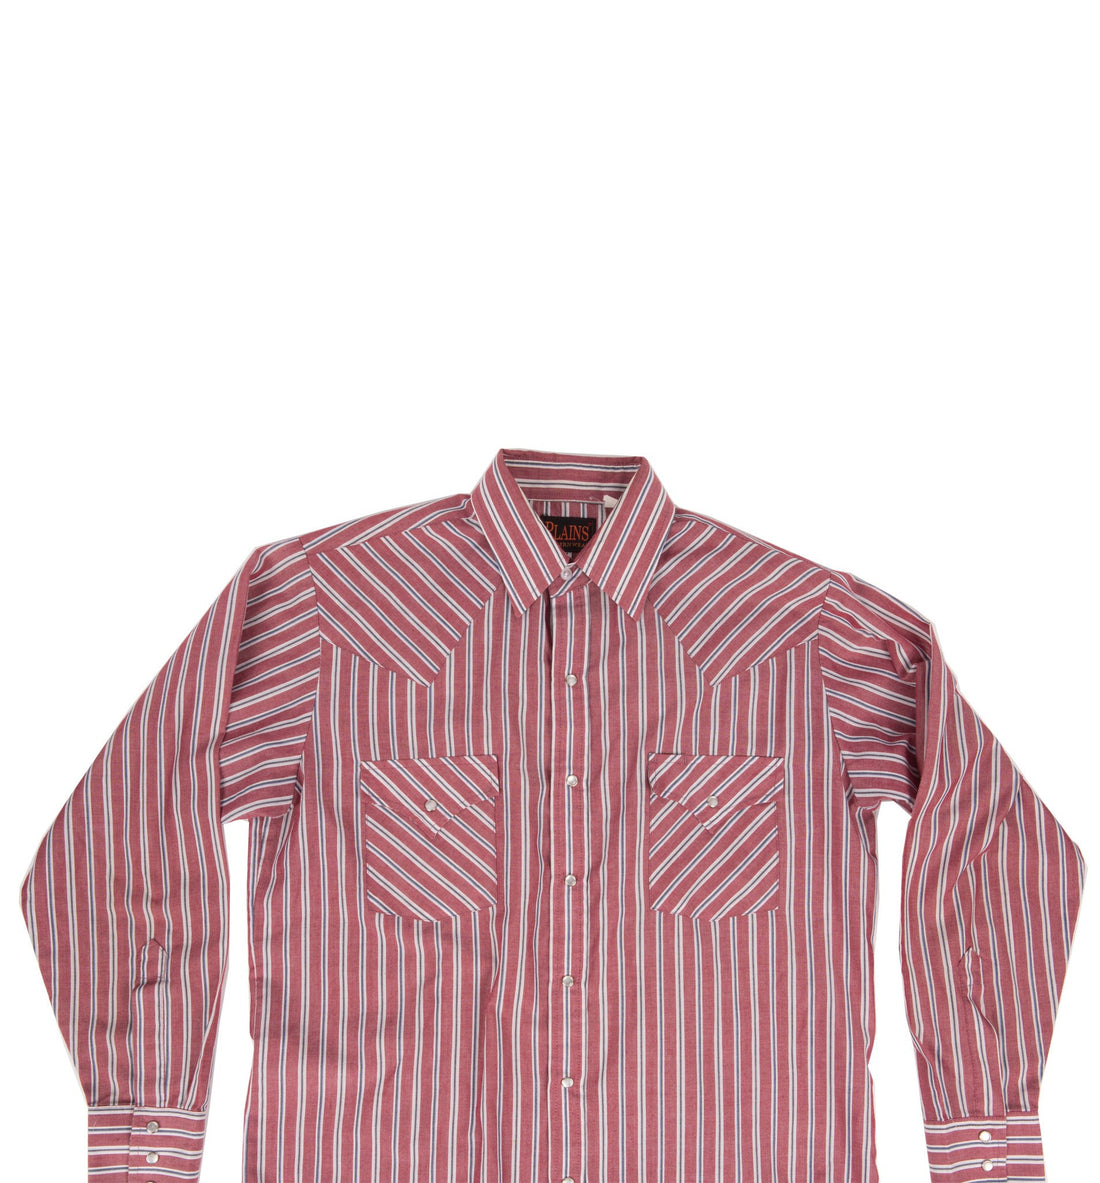 Vintage 70's Men's Plains Red Stripe Button Up Shirt - Vintage - Iron and Resin